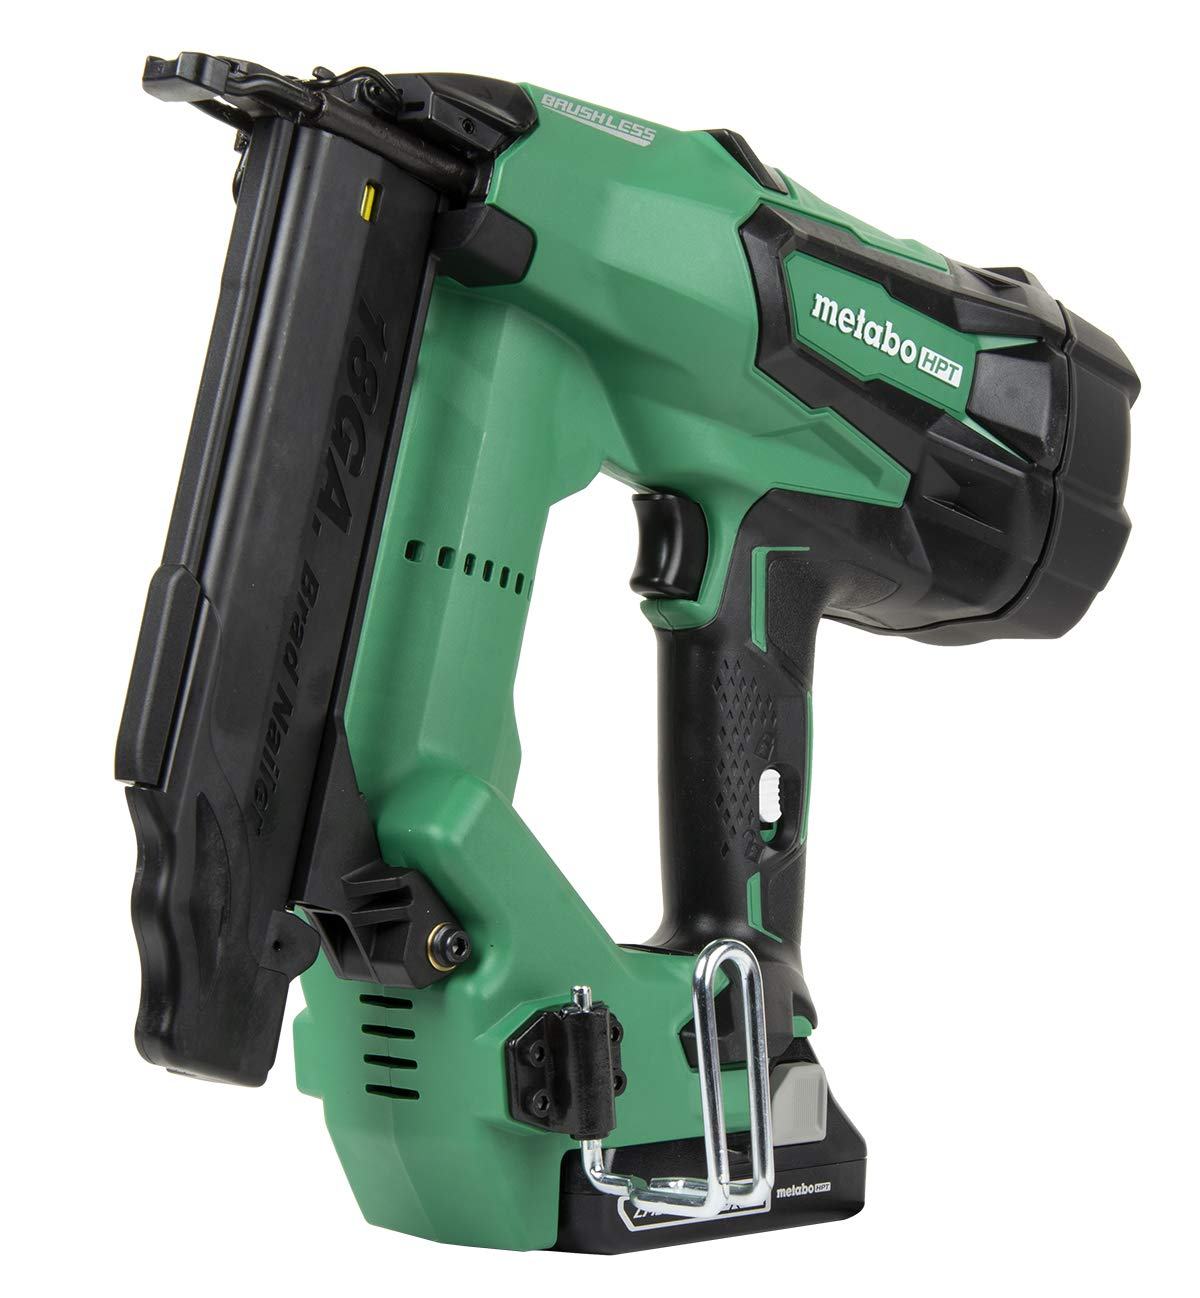 Metabo HPT Cordless Brad Nailer Kit Unique Air Spring Drive System 18V Brushless Motor 18 Gauge 5 8 to 2 Brad Nails Compact 3.0 Ah Lithium Ion Battery Lifetime Tool Warranty NT1850DE